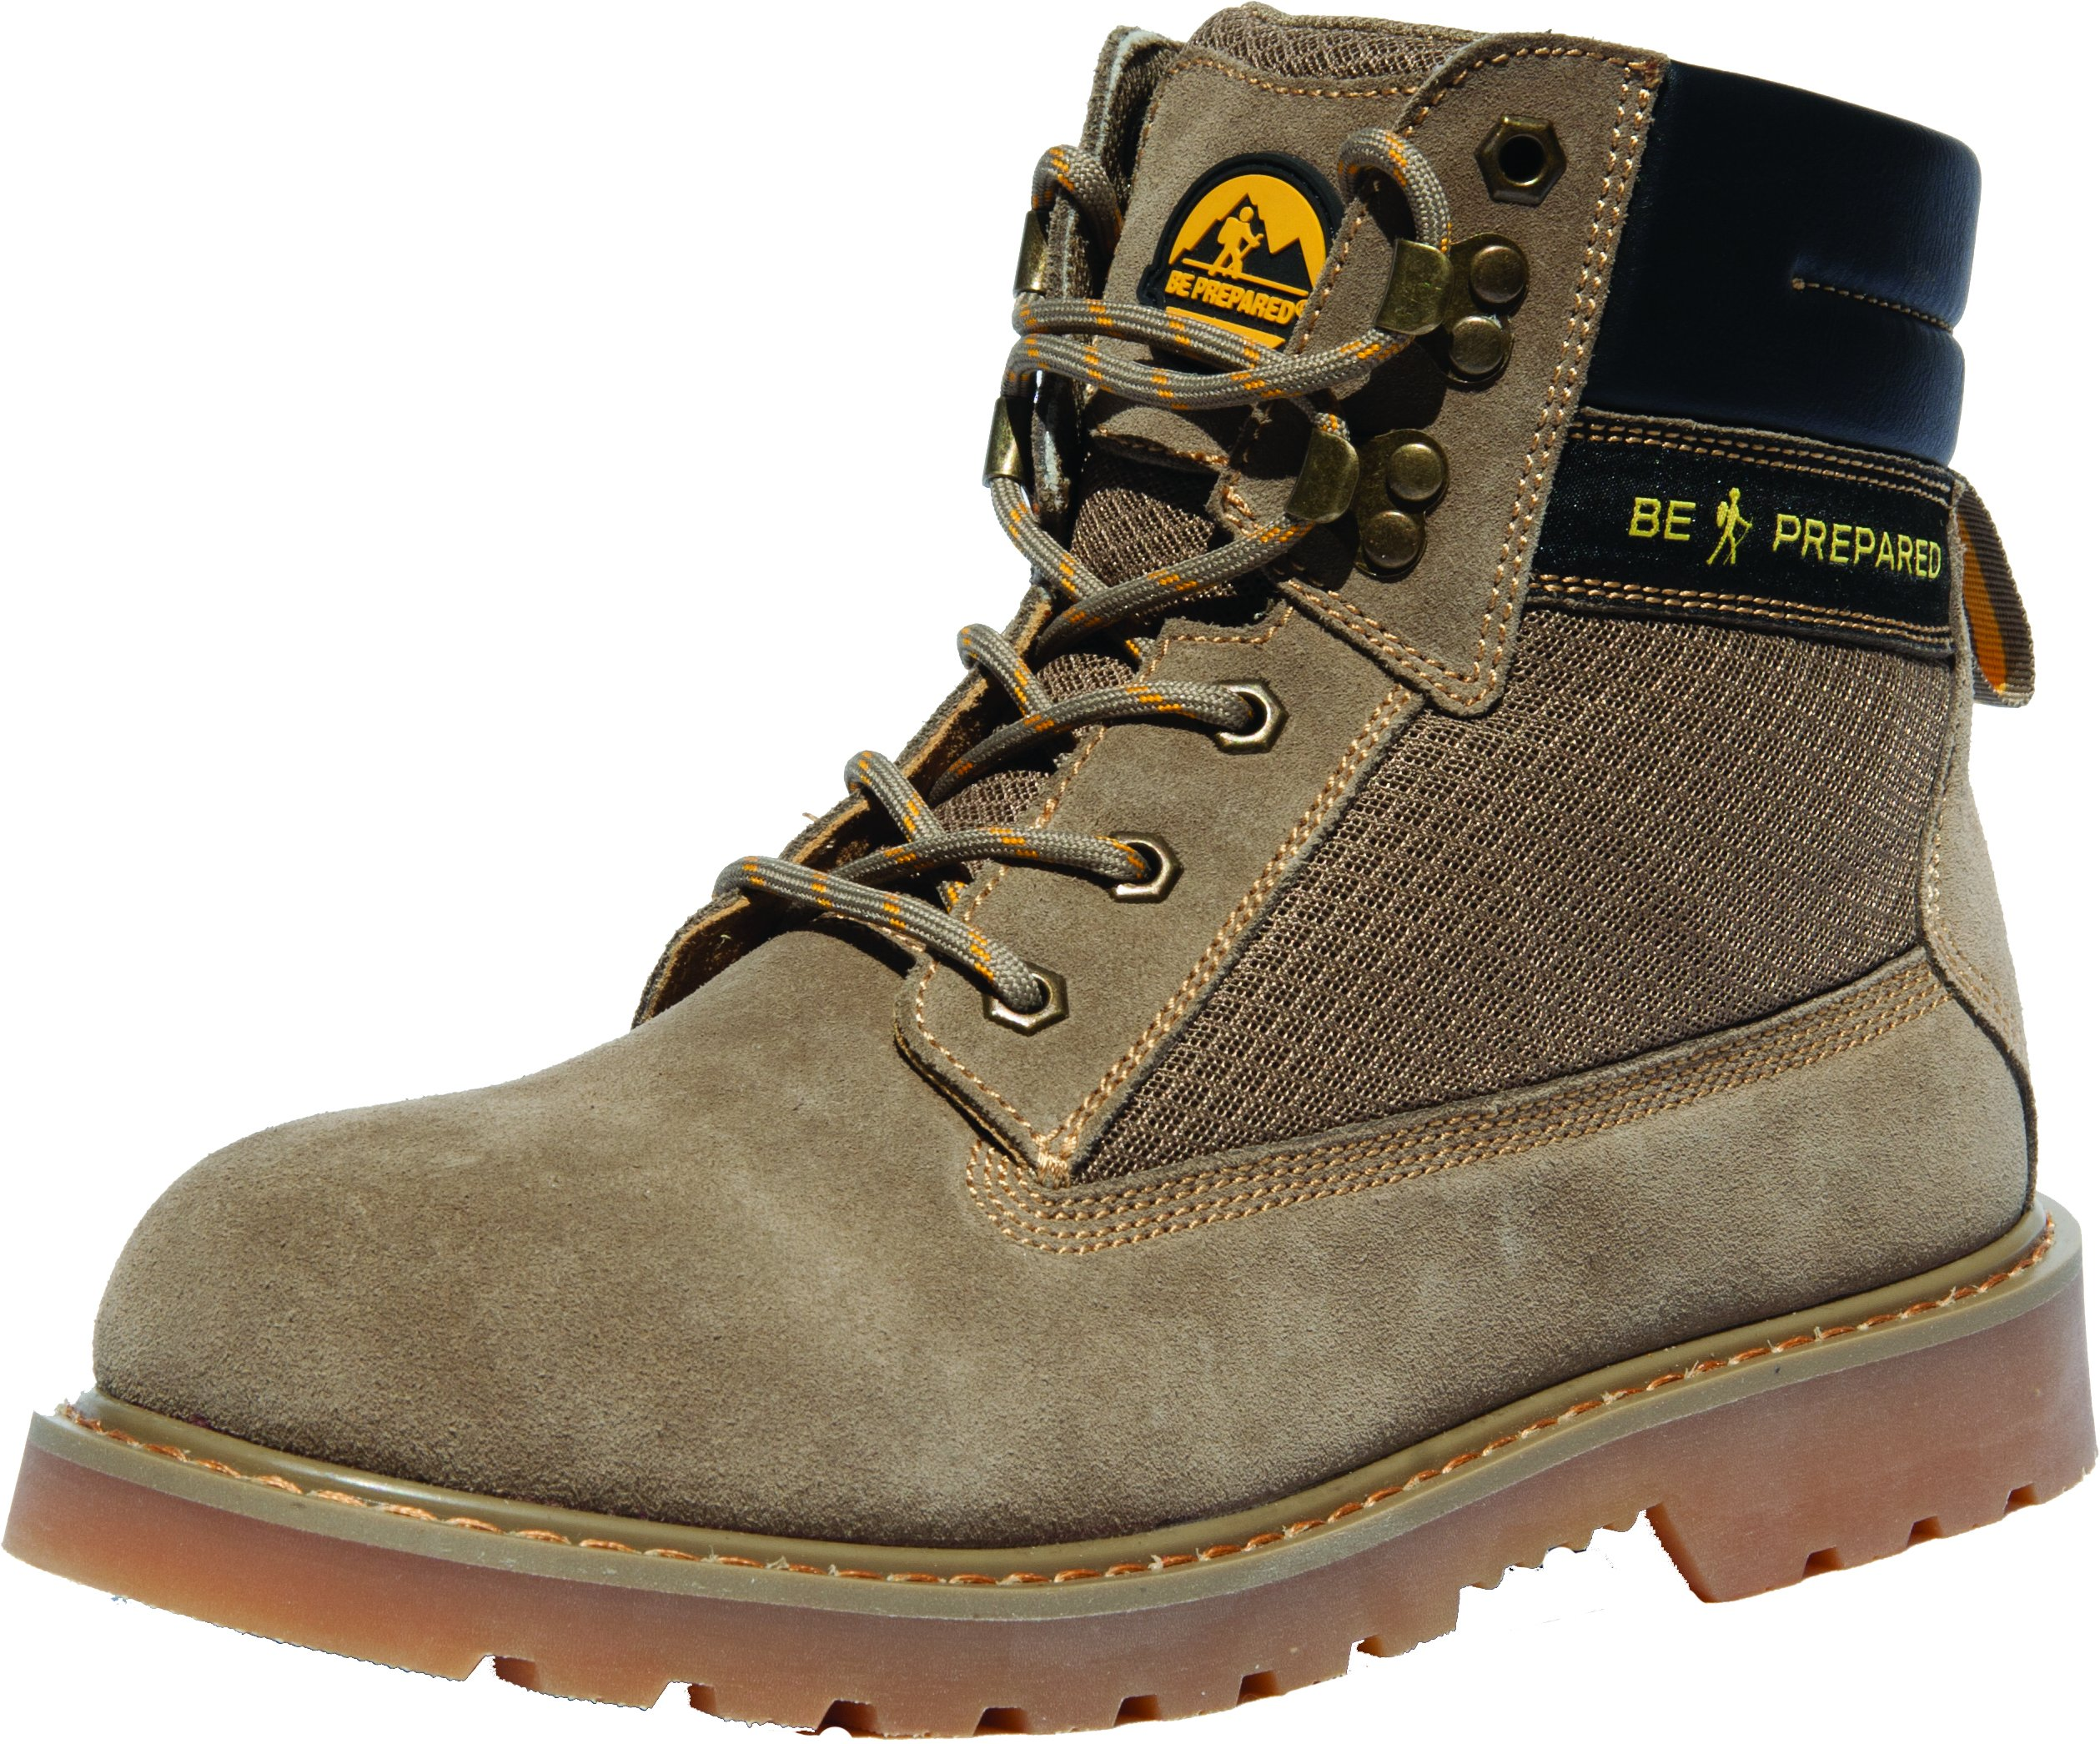 Official Boy Scouts of America Outdoor Hiking Boots/Shoes Scout Pro Suede (10) Tan by Be Prepared